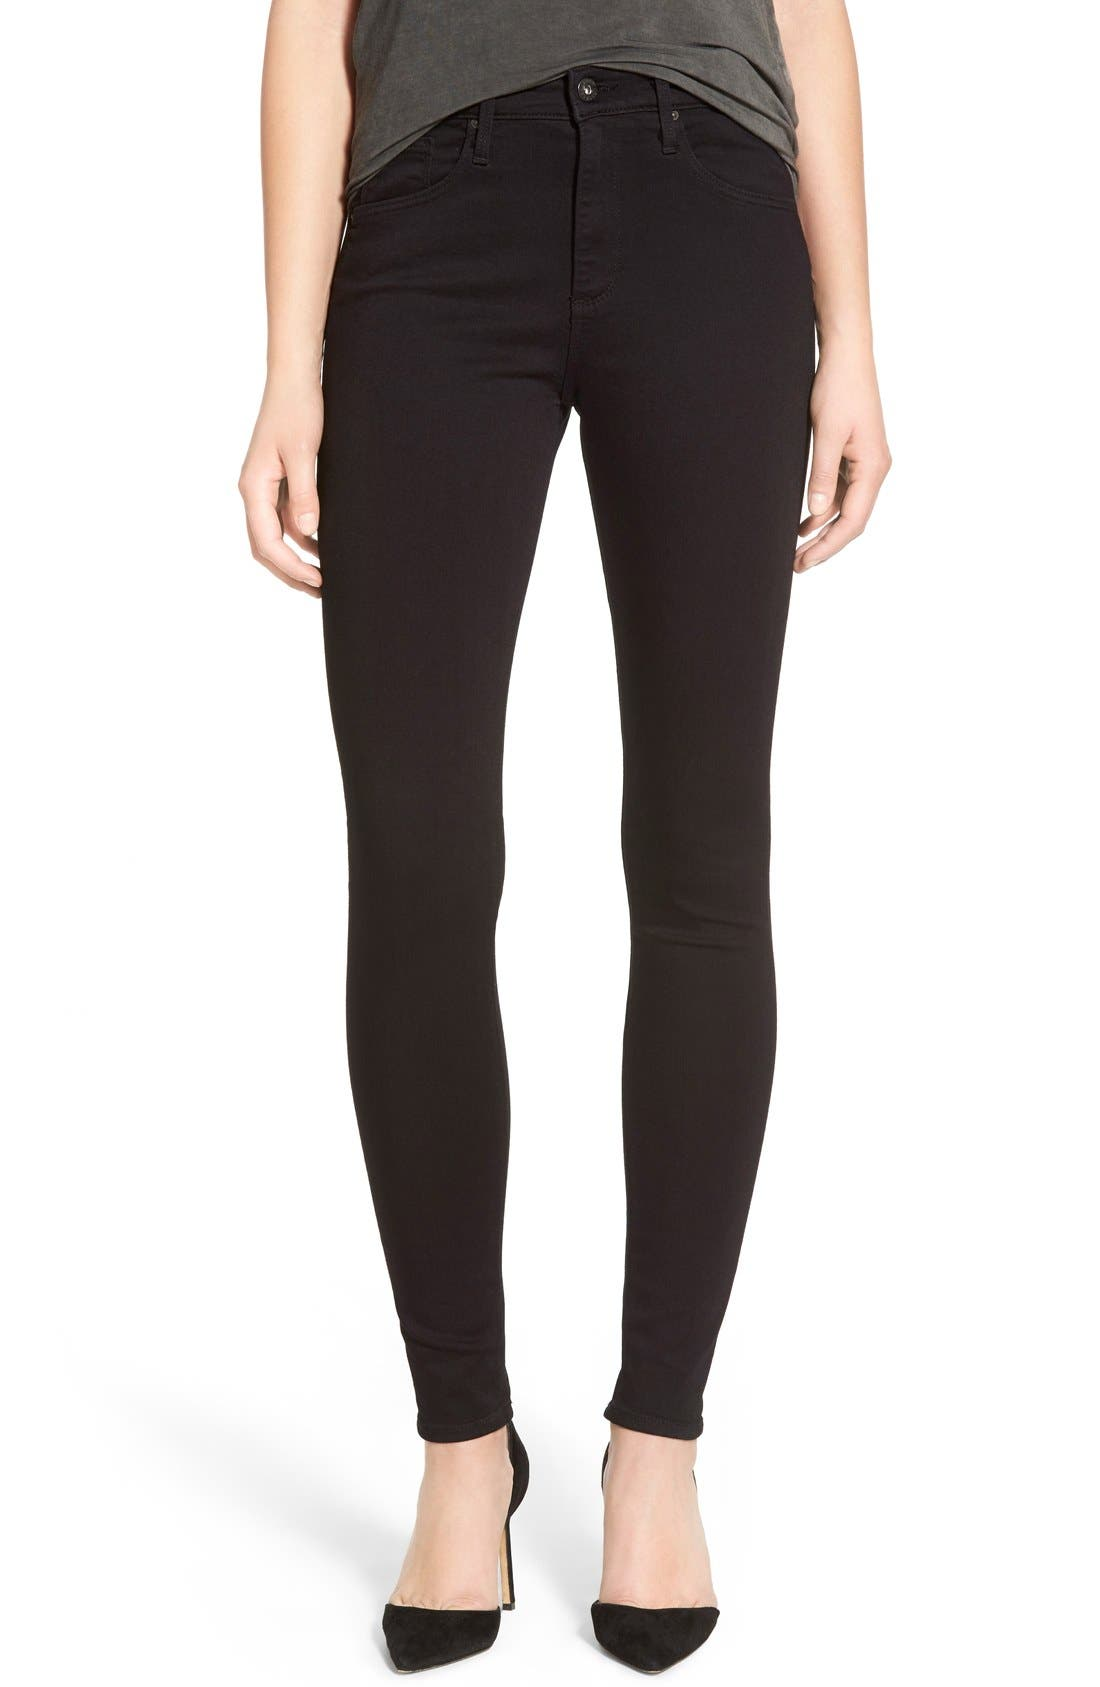 ASOS DESIGN Maternity Ridley high waist skinny jeans in extreme dark stonewash with button fly and ripped knee with unde. £ Weekday Thursday High Waist Skinny Jeans. £ New Look Petite contrast stitch paper bag jeans in black. £